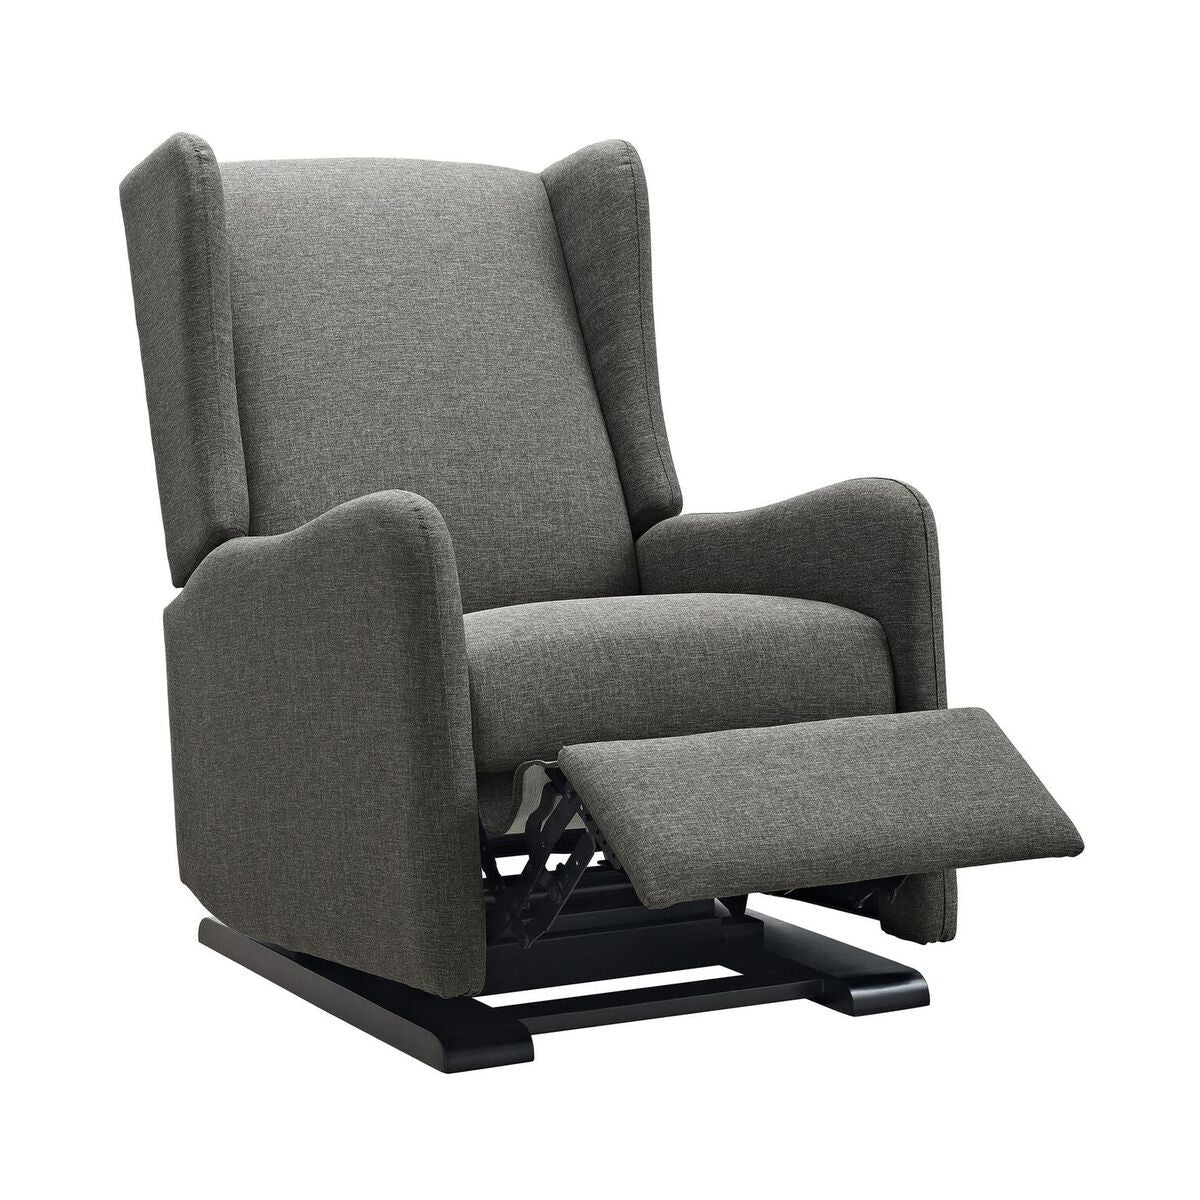 Baby Knightly Rylee Gliding Recliner